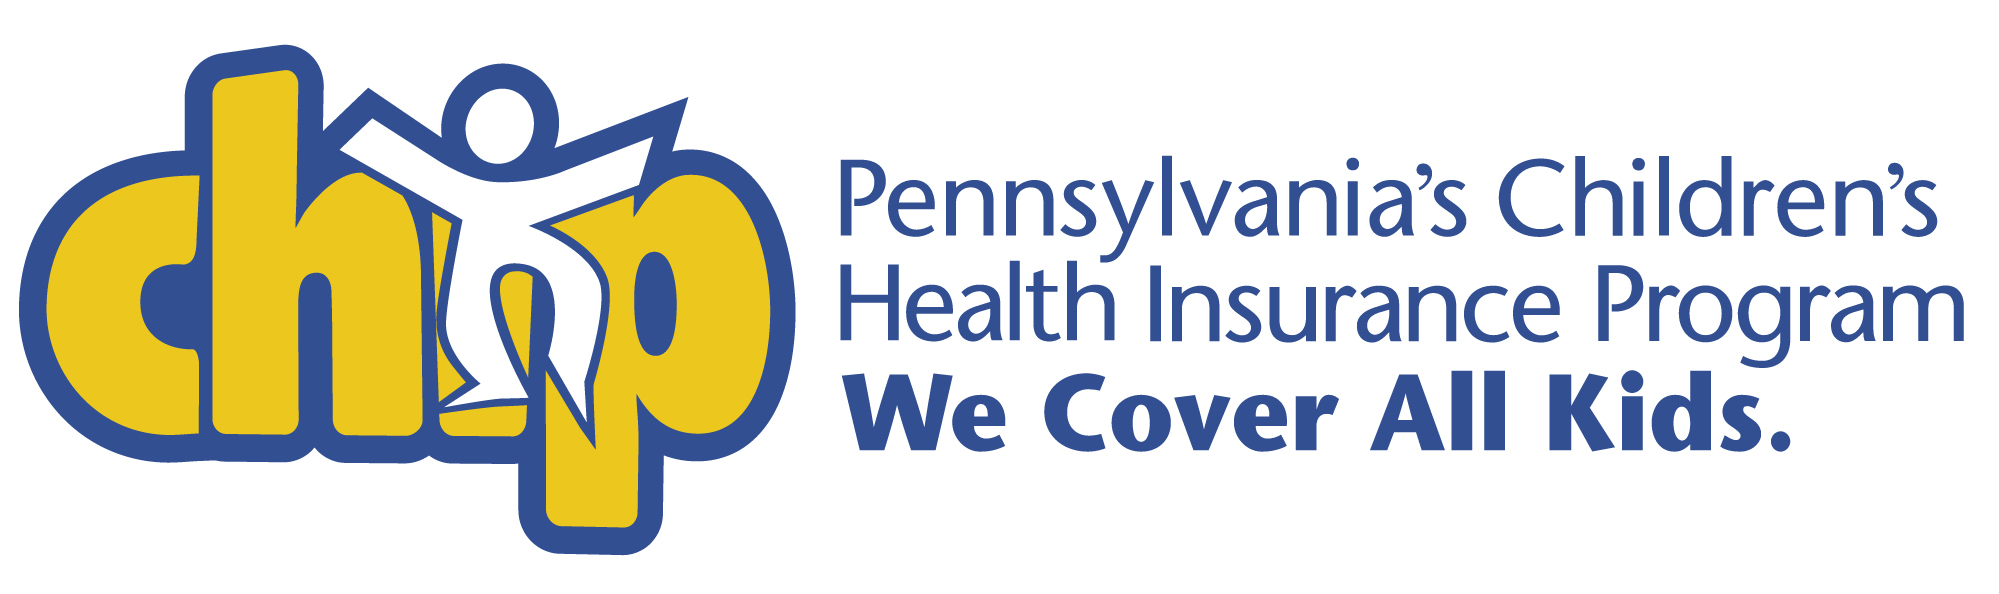 Pennsylvania Children's Health Insurance Program (CHIP)